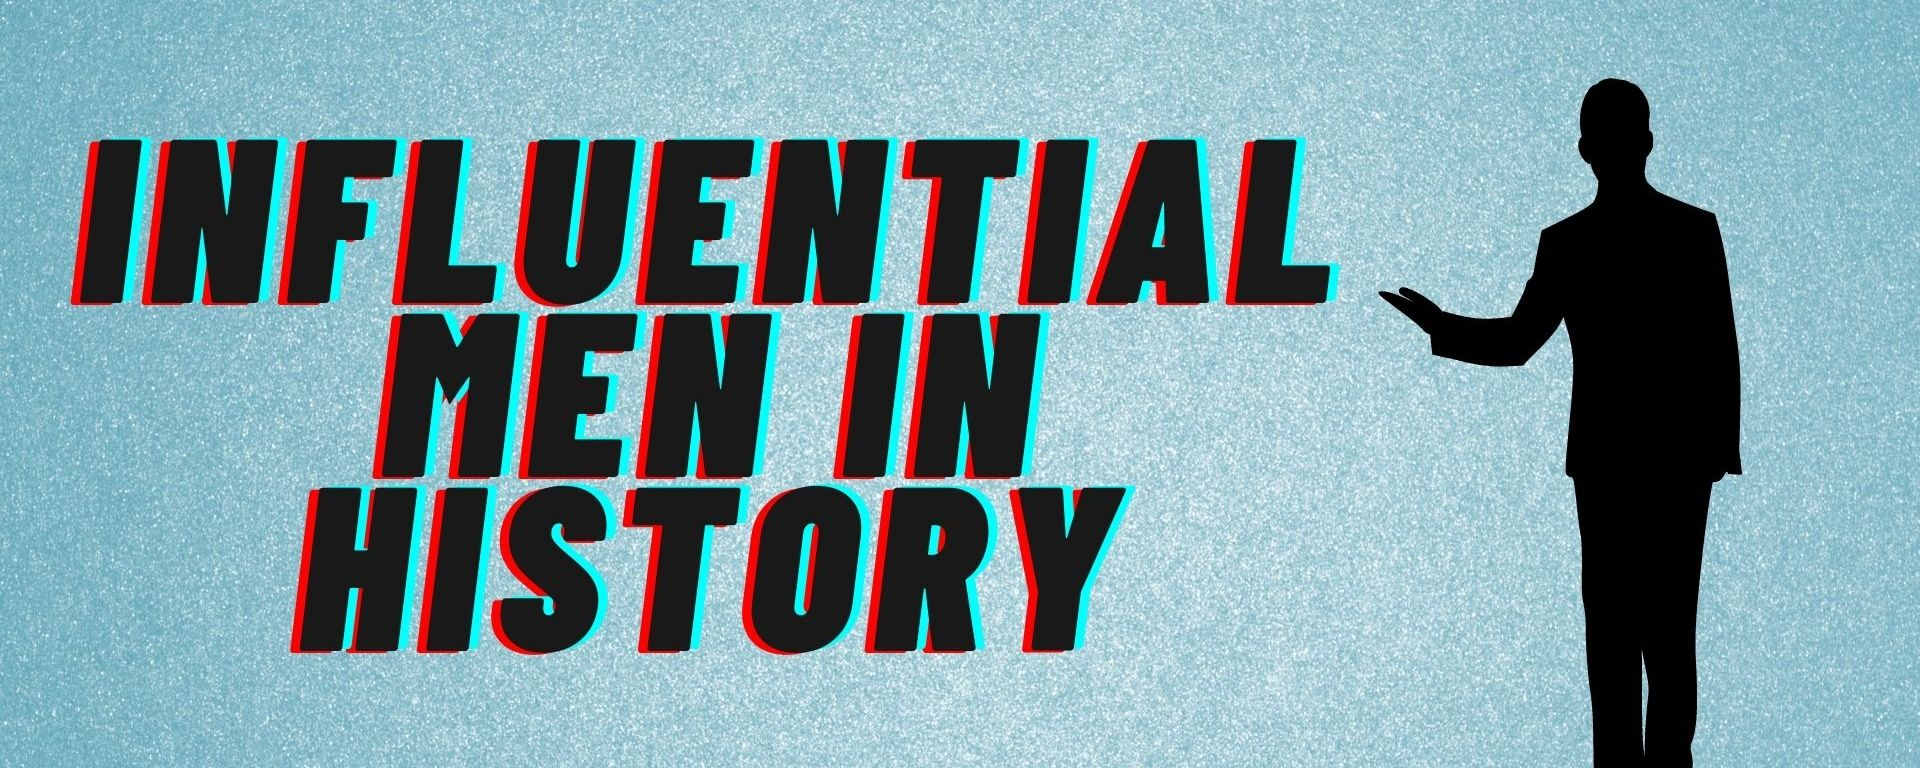 """The words """"Influential Men in History"""" in bold letters with an outline of a man."""